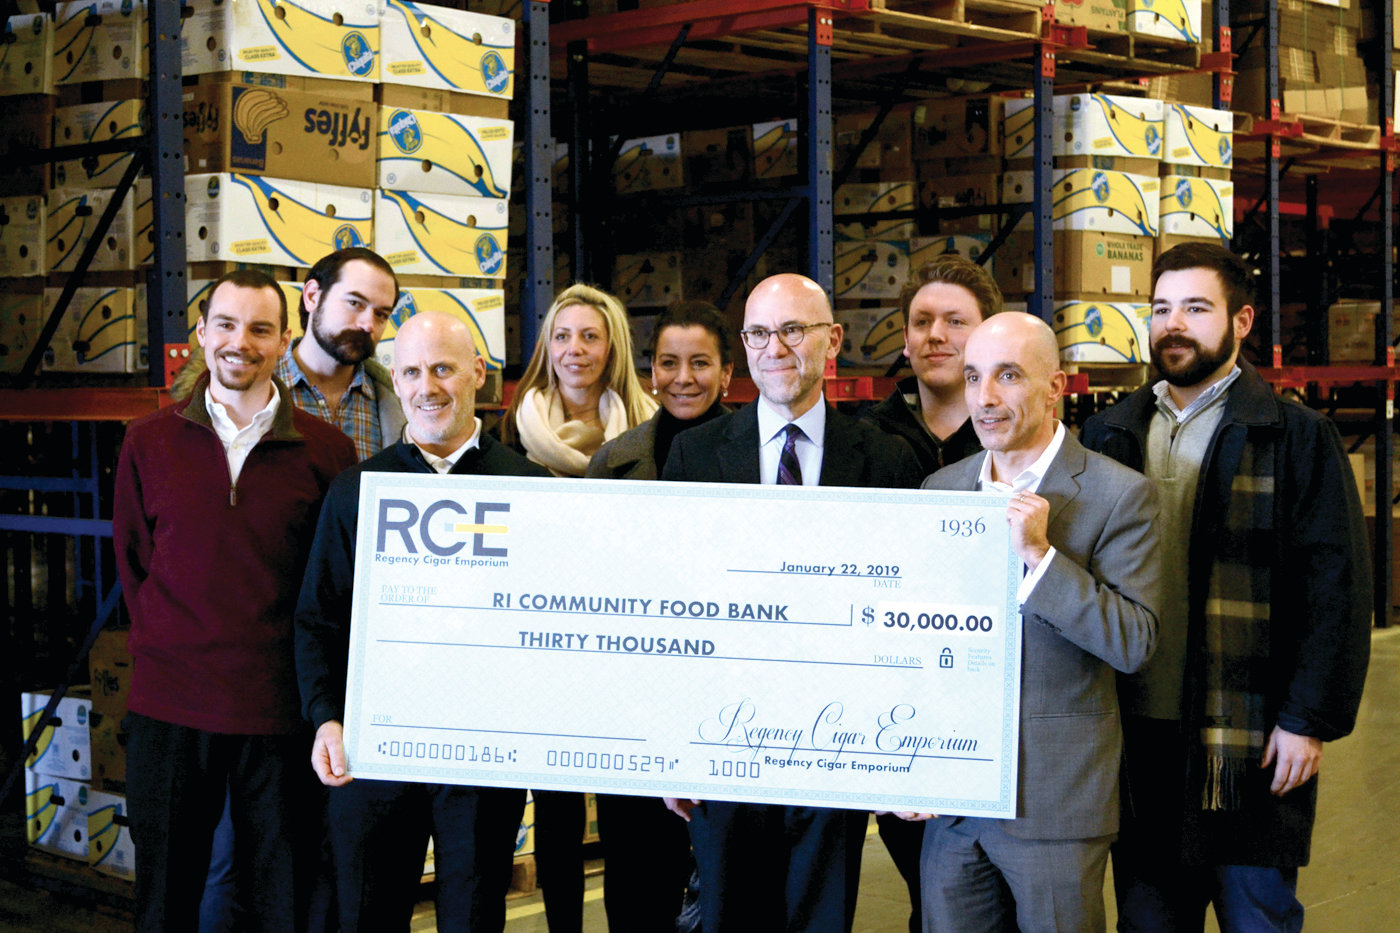 QUITE A BOOST: Tyler Divona, Stephen Carlson, Andrew Schiff (RI Food Bank CEO) Michael Correia (Owner, Regency Cigar), Antonio Negovetti, Talia Morettia, Melissa Stephens, David St.Amant and Brandon Ribbing celebrated a big donation with a big check.